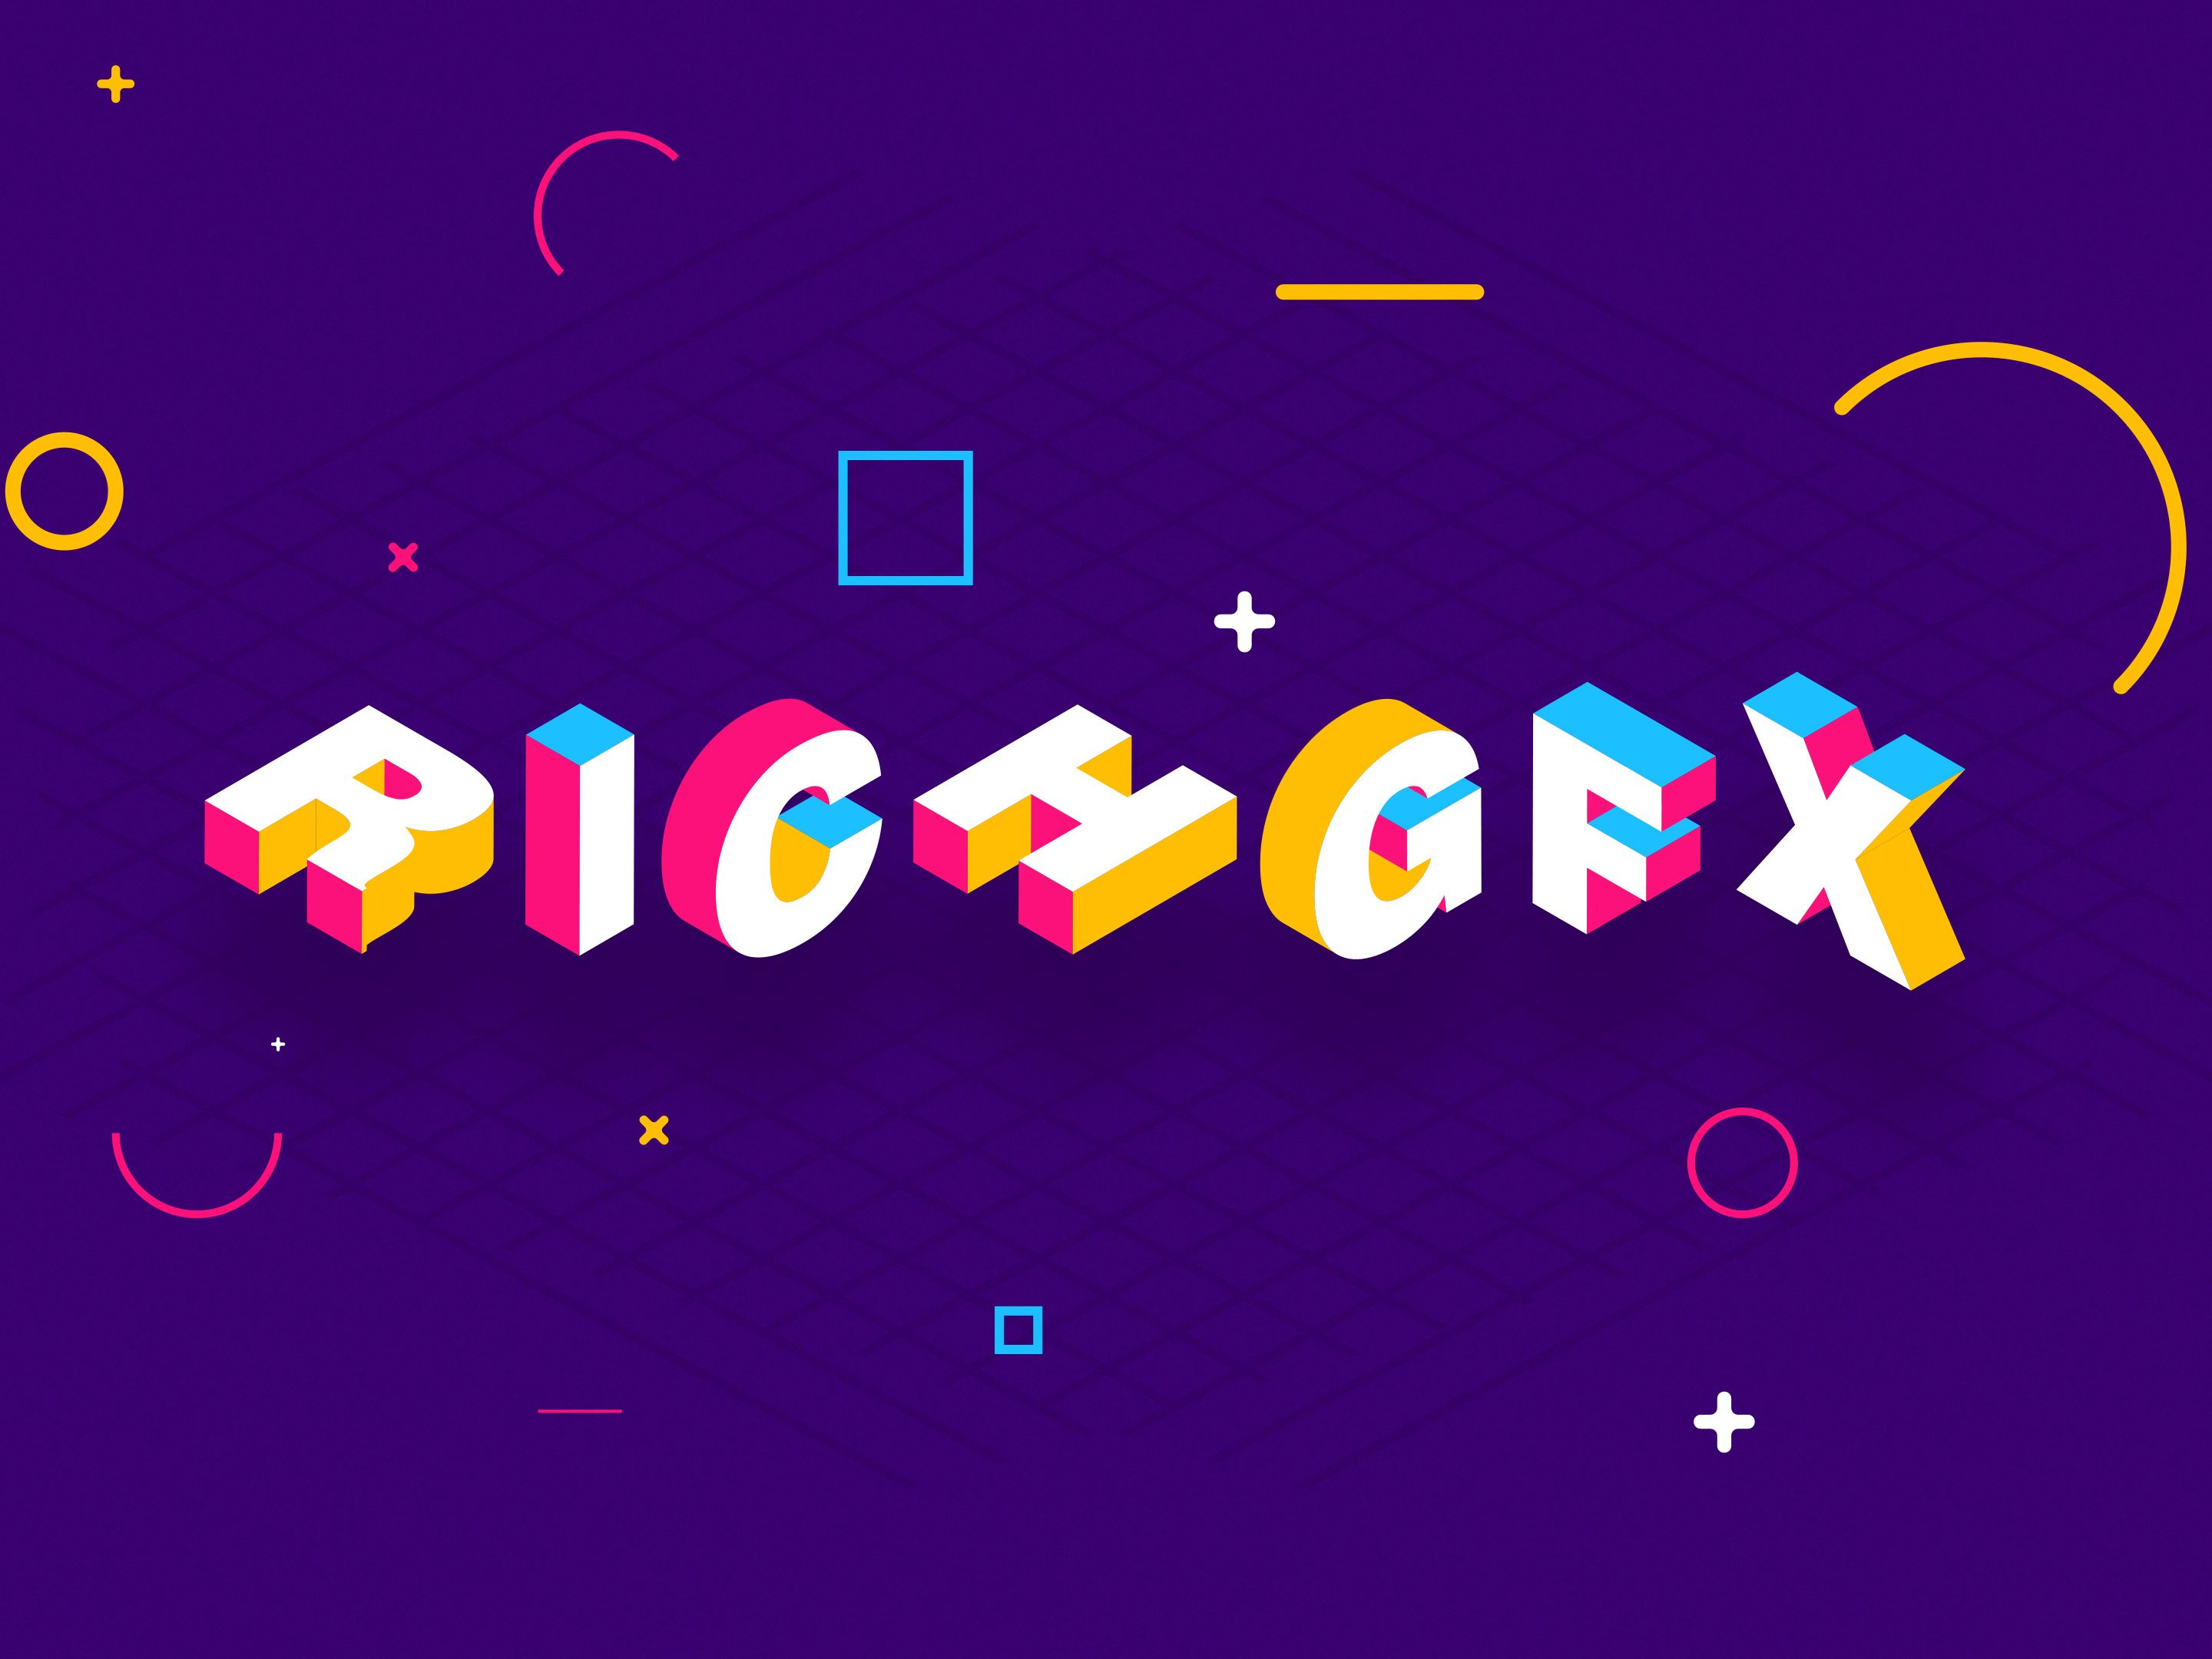 3D Isometric Text Effect In Adobe Illustrator in 2020